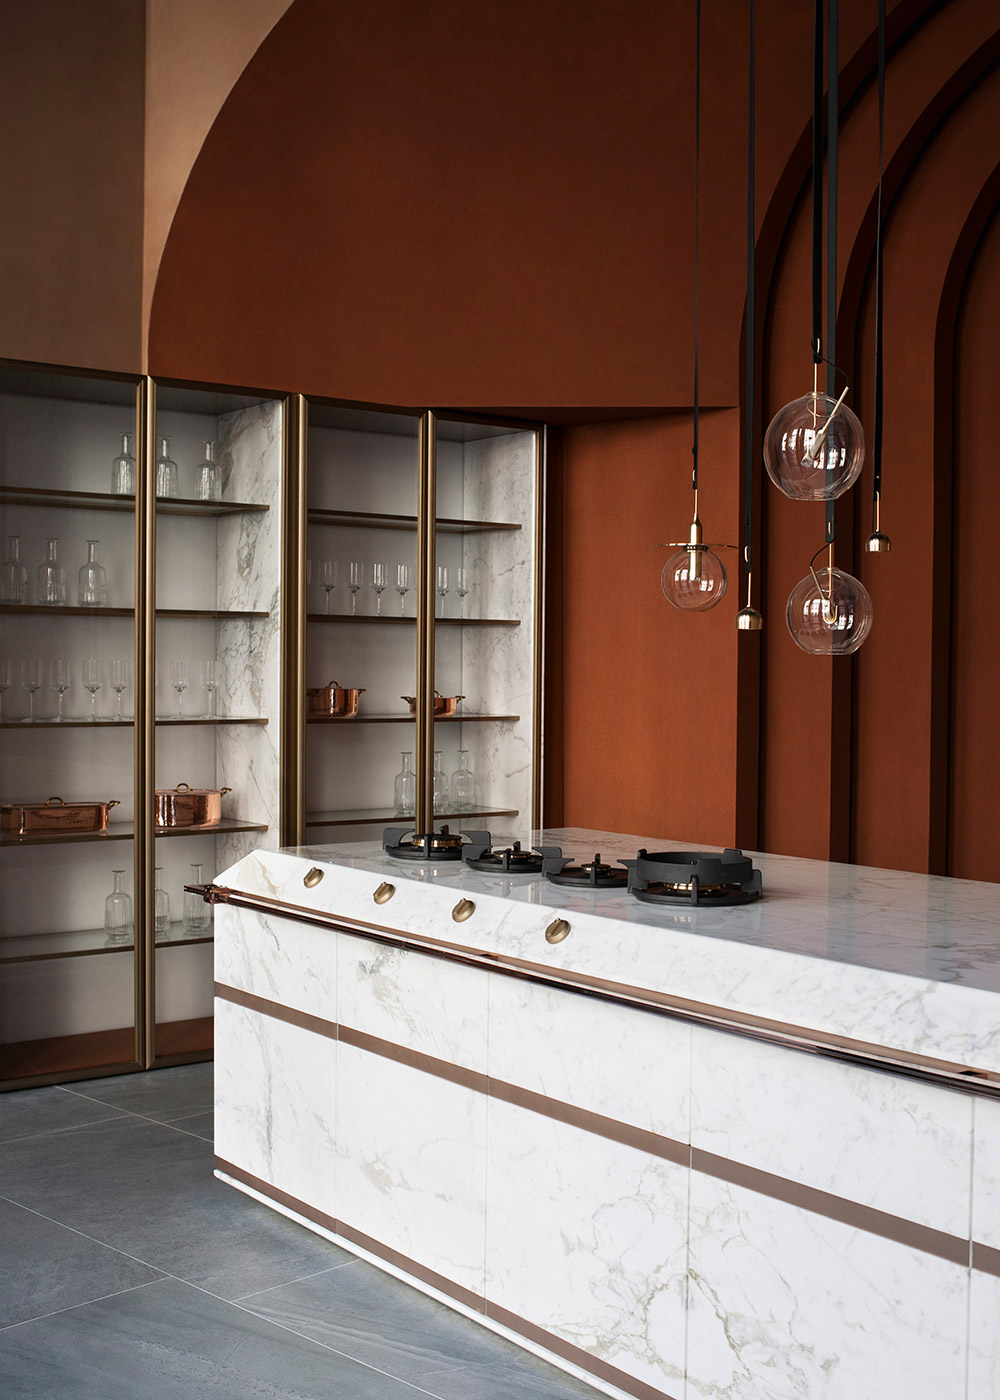 03_FENDI-CUCINE_GINGER-designed-by-Marco-Costanzi_Durini_side-view